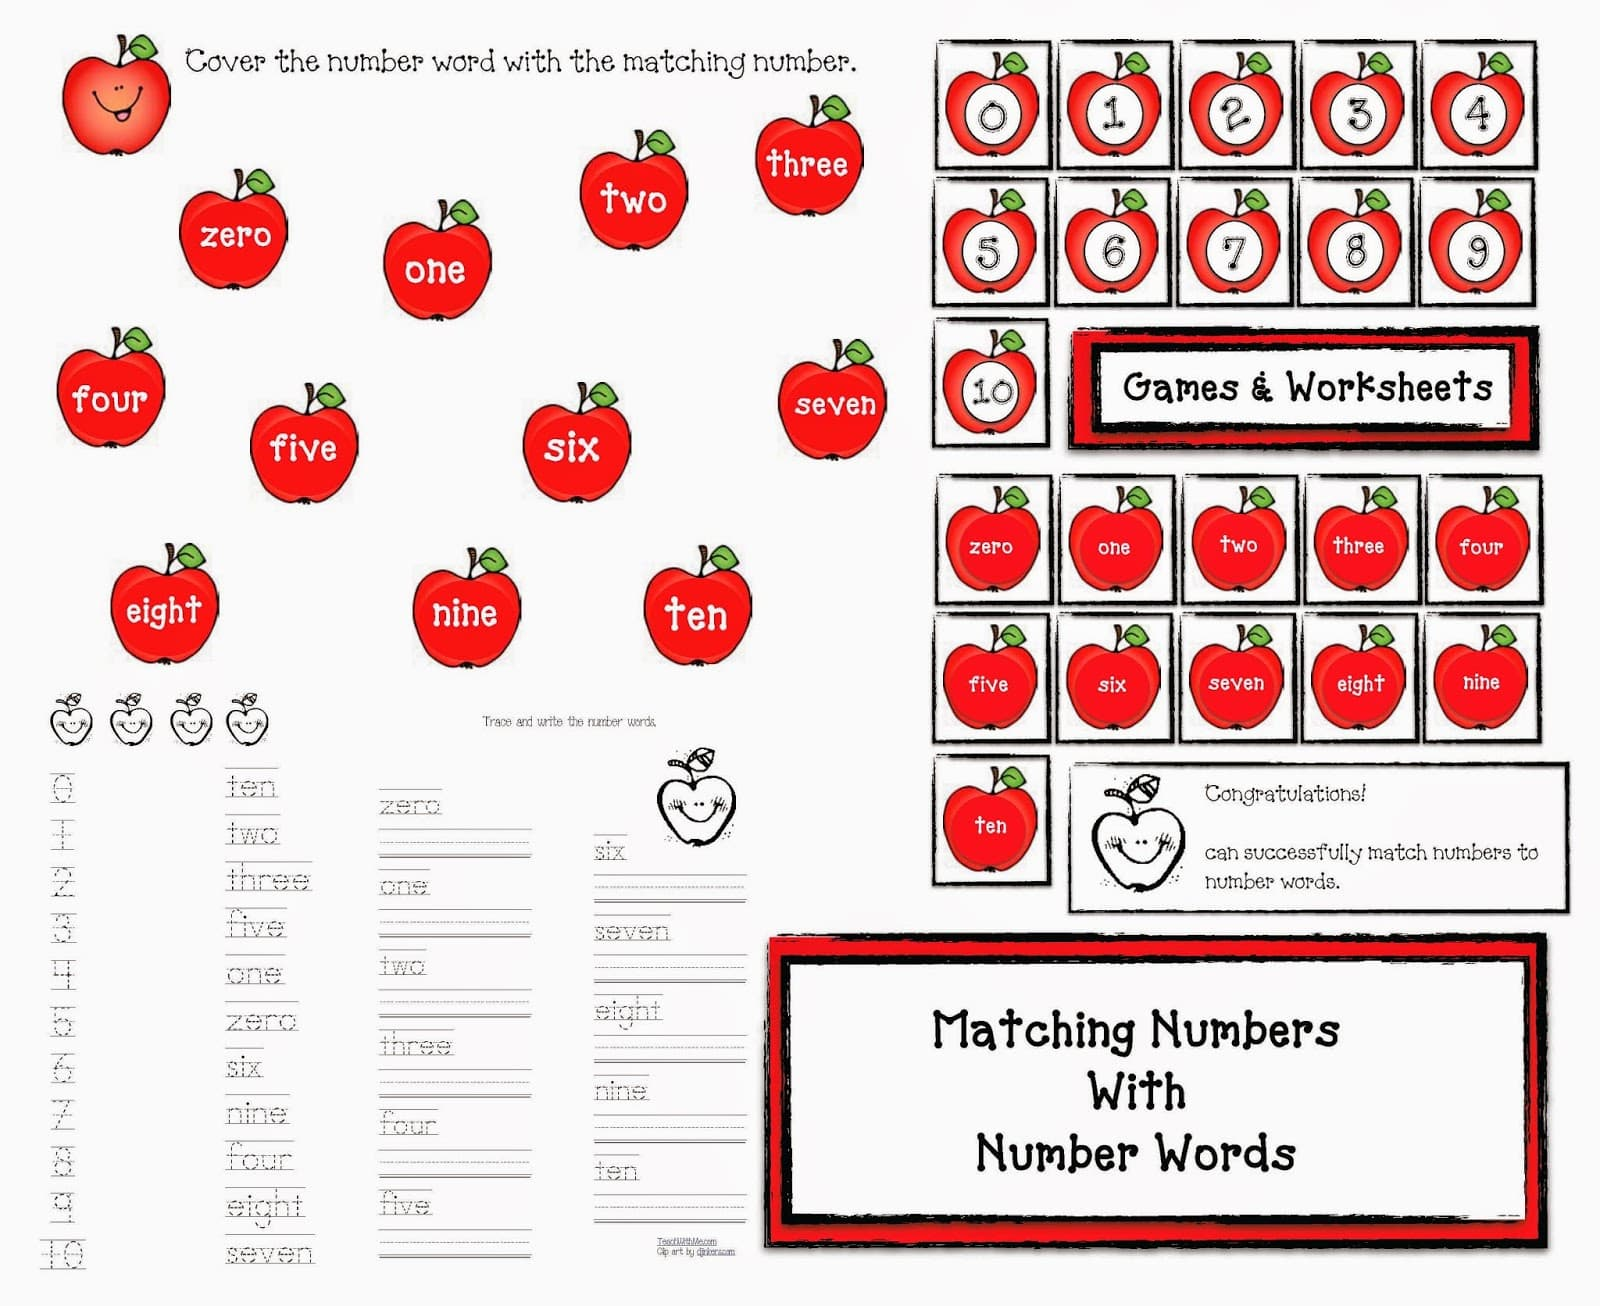 Apple Games Matching Numbers With Number Words